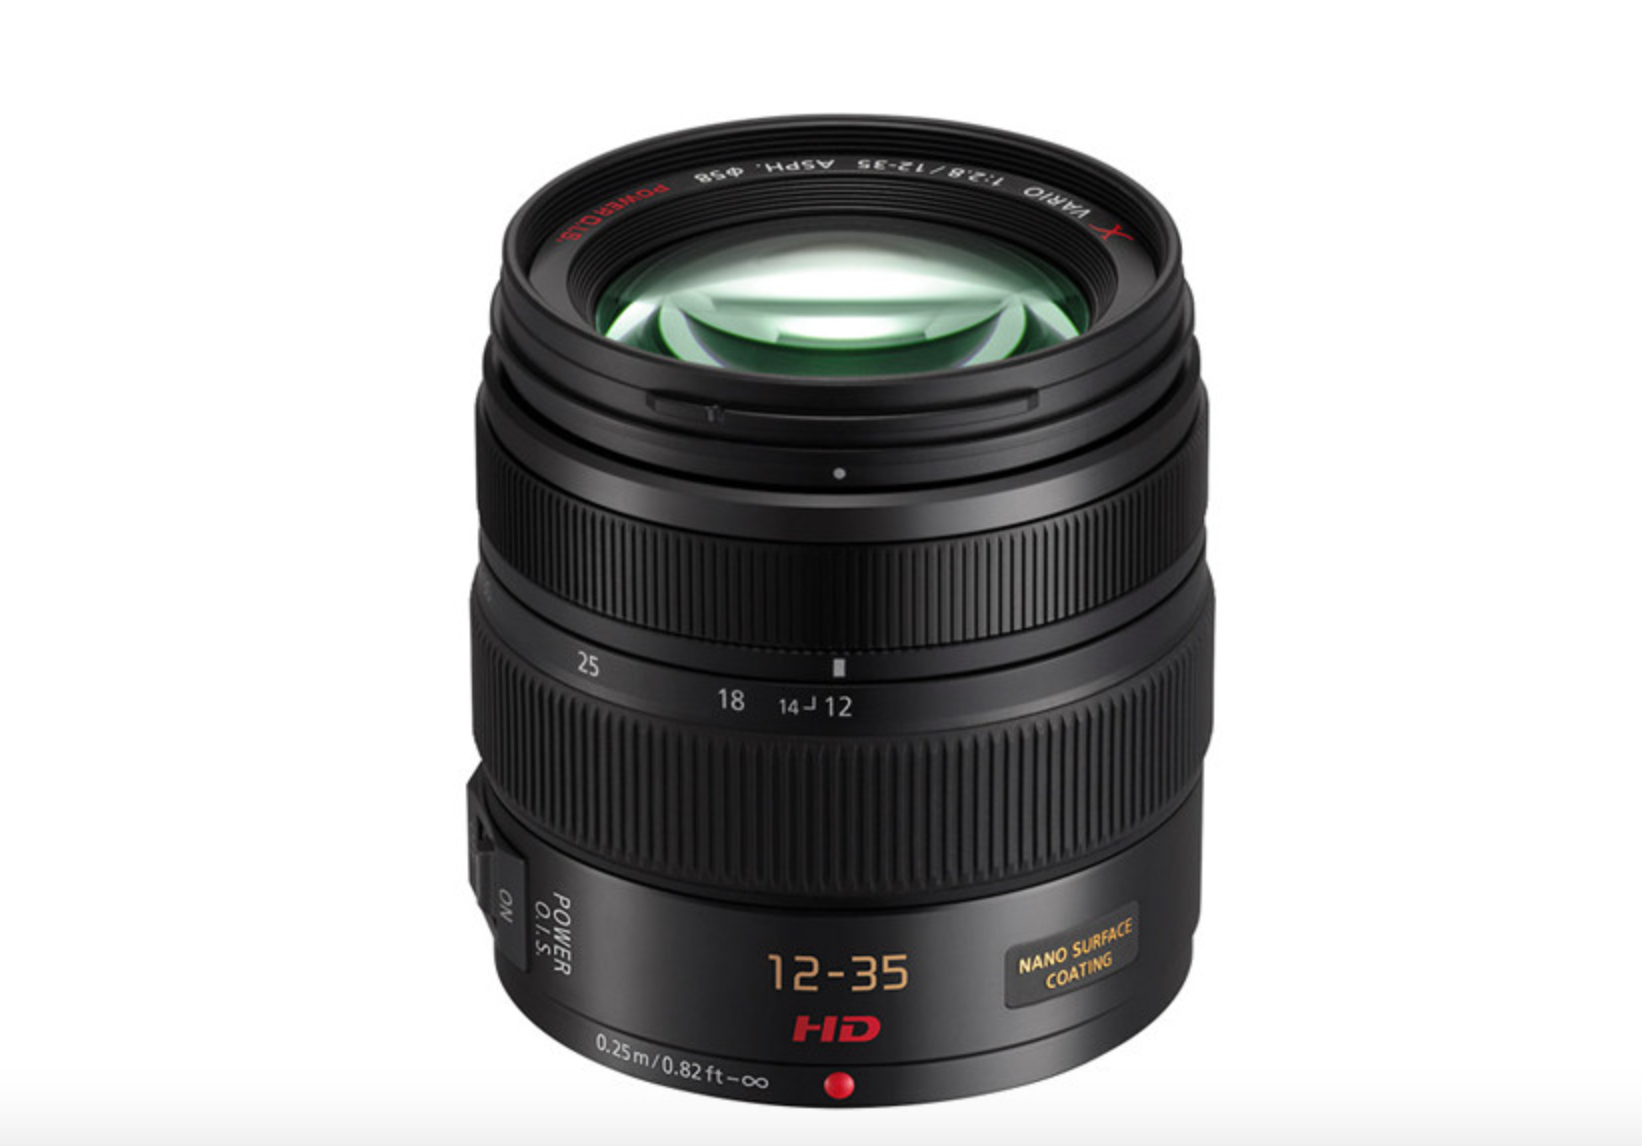 http://thedigitalstory.com/2016/12/14/panasonic-zoom.png